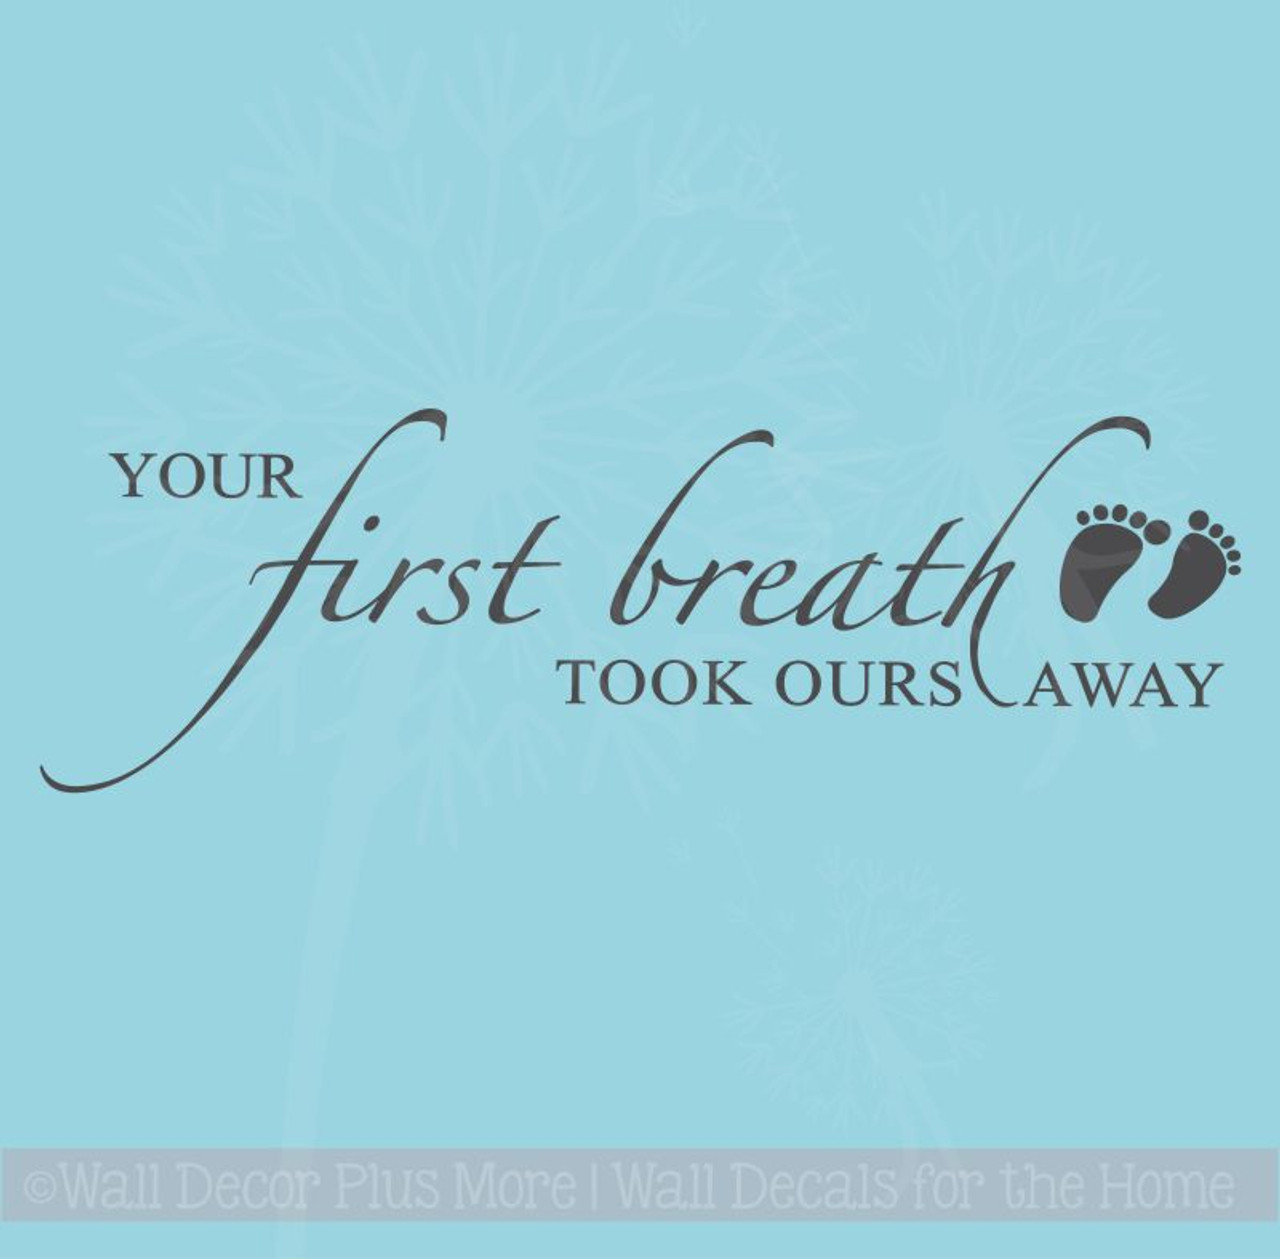 sc 1 st  Wall Decor Plus More & Your First Breath Baby Wall Decal Sticker Nursery Wall Letters 5x17